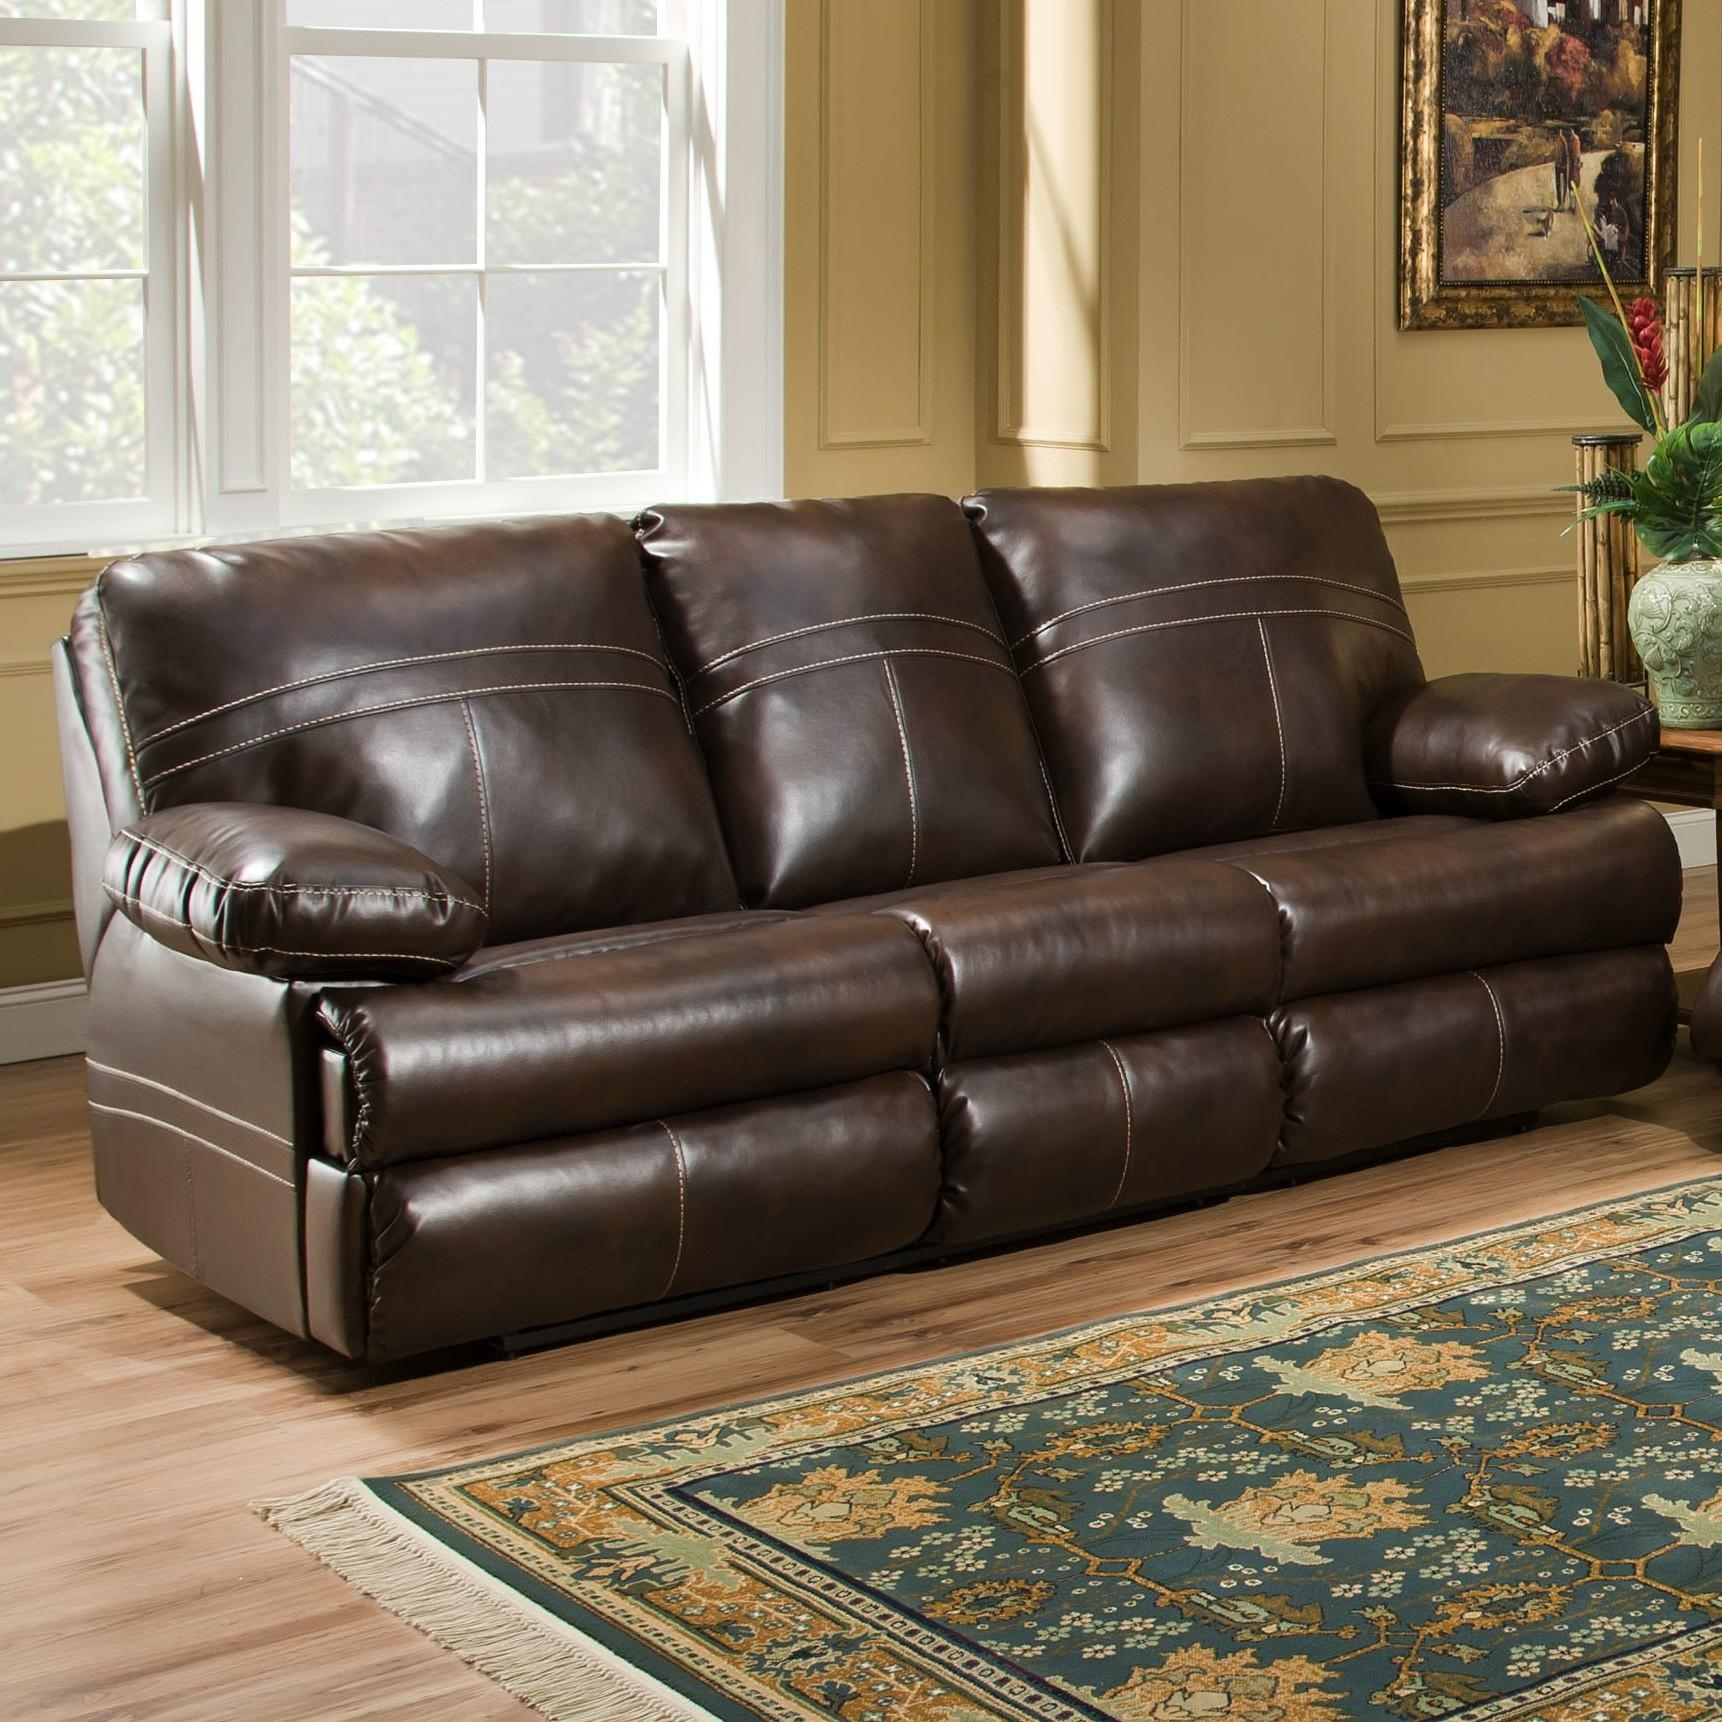 Leather Sofas & Coated Fabric Sofas | Ikea | Tehranmix Decoration Intended For Simmons Leather Sofas (Image 3 of 20)